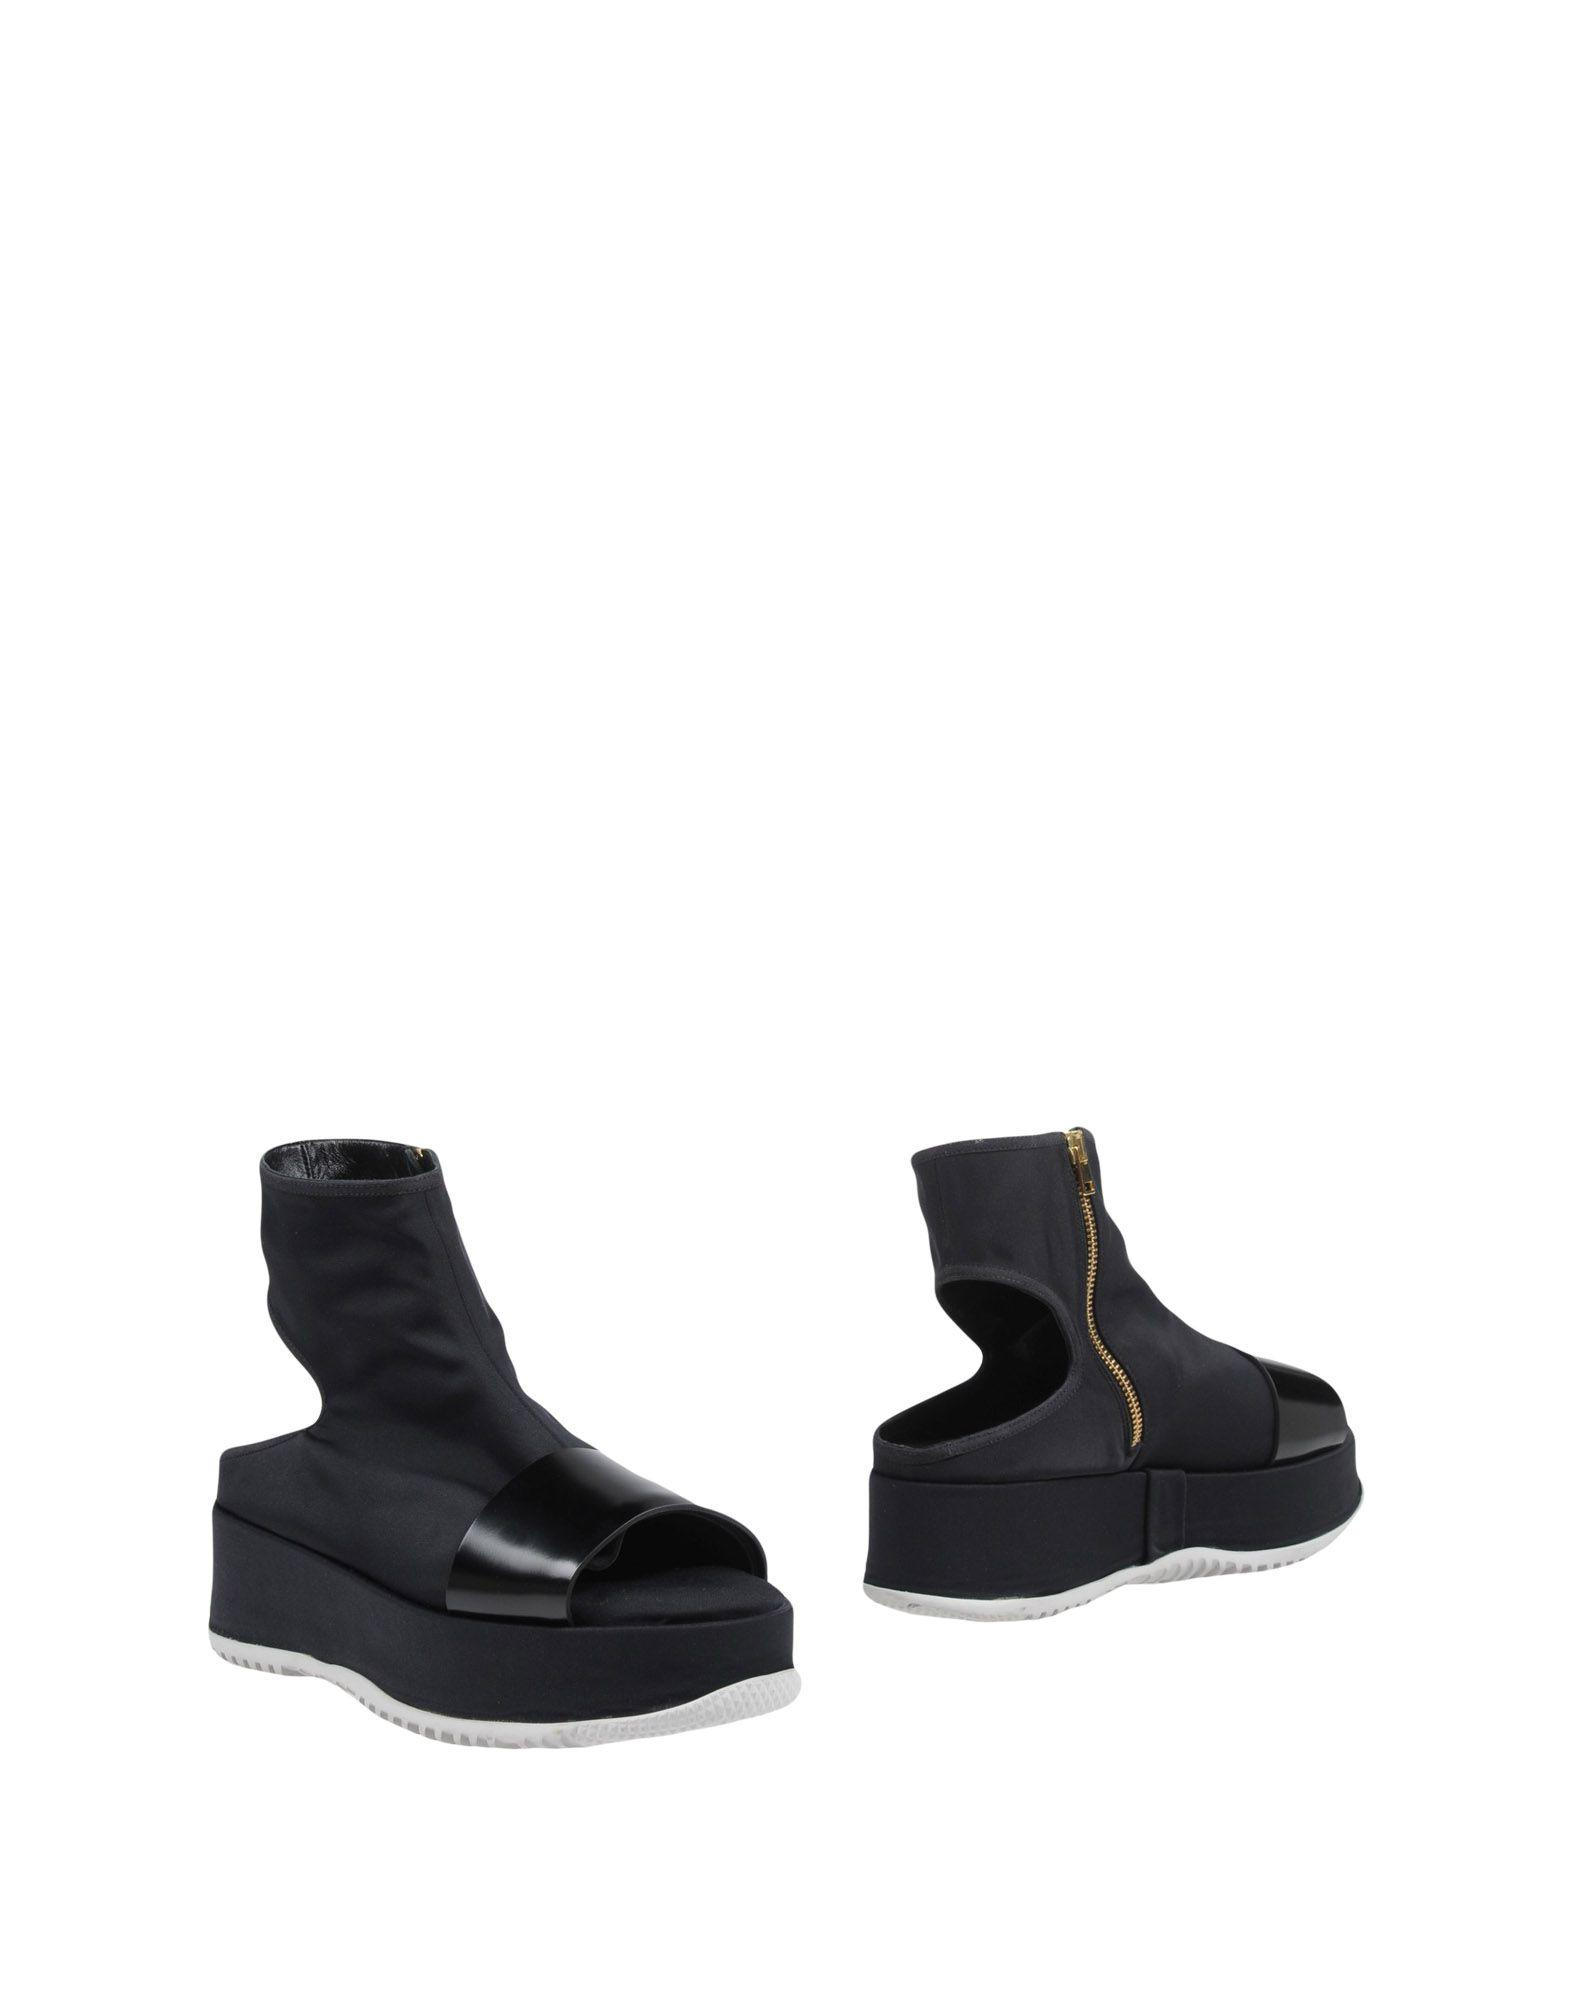 Marni Ankle Boots In Black